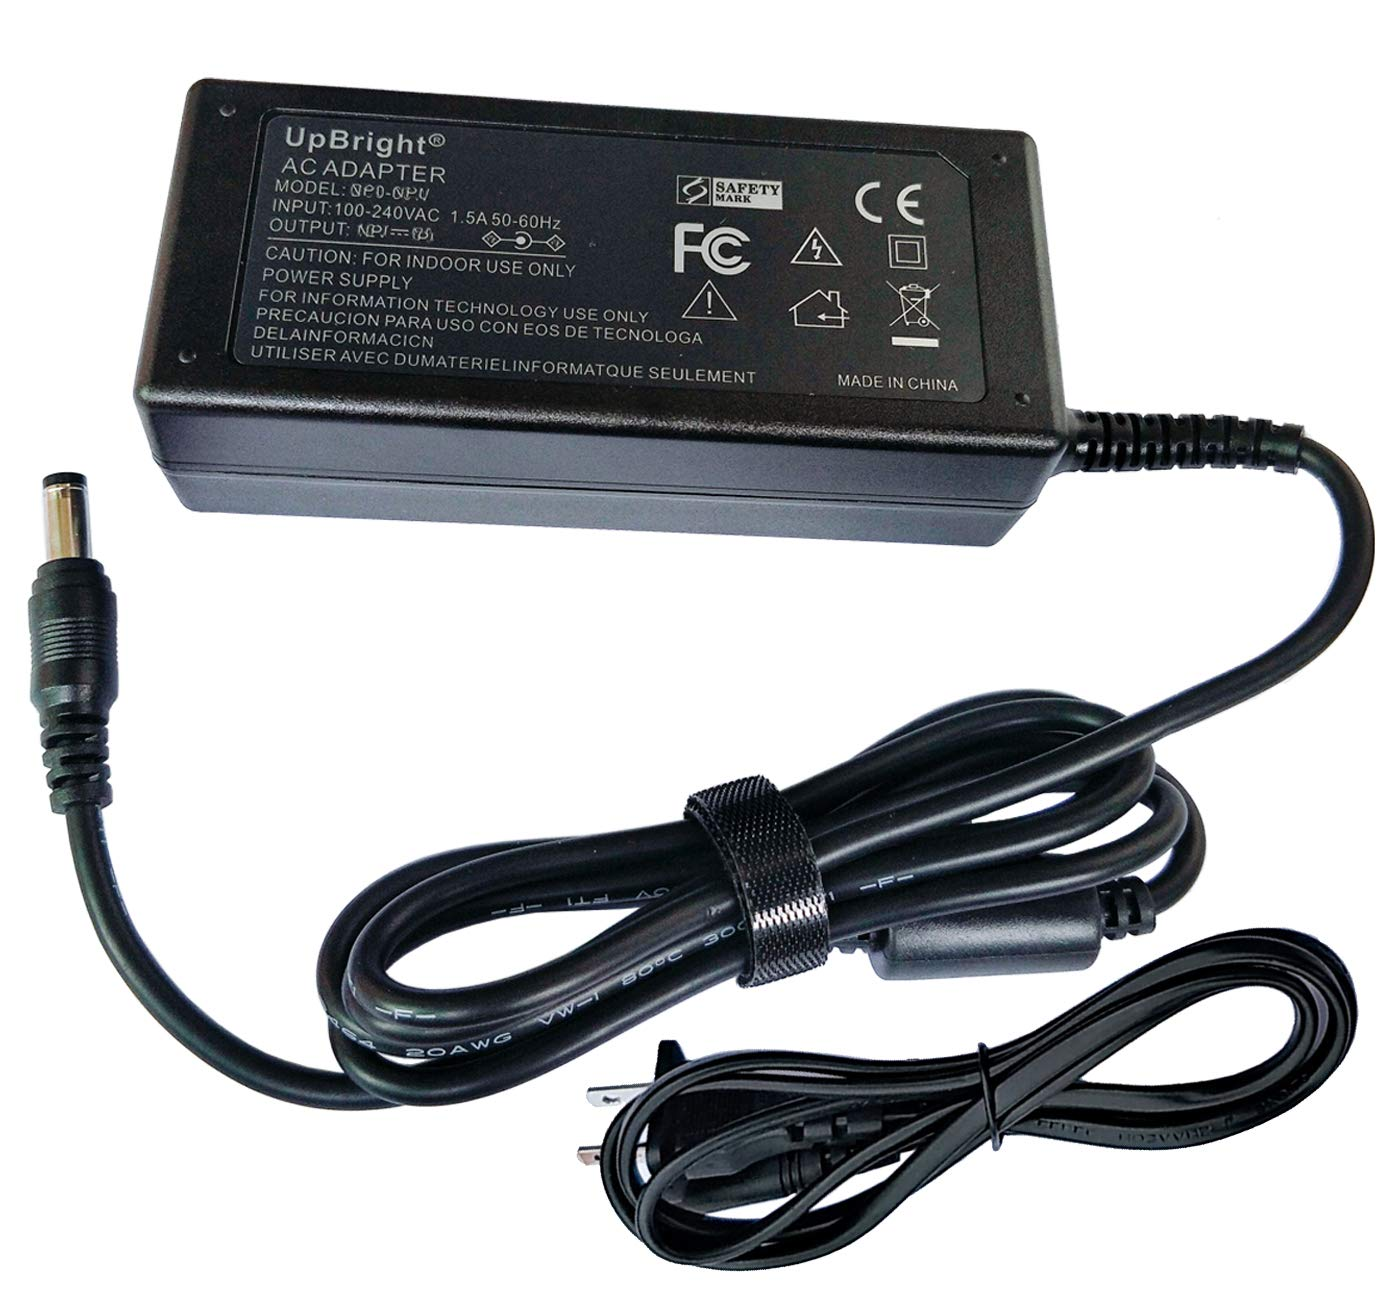 UpBright New 25V AC/DC Adapter Compatible with LG NB4543 4.1ch NB3540 NB4540 NB 3540 NB 4540 SL5Y SL6Y SL7Y SL8Y SL8YG SK4D SL4Y SL3D SoundBar Smart Audio Wireless Sound Bar 25VDC Power Supply Charger